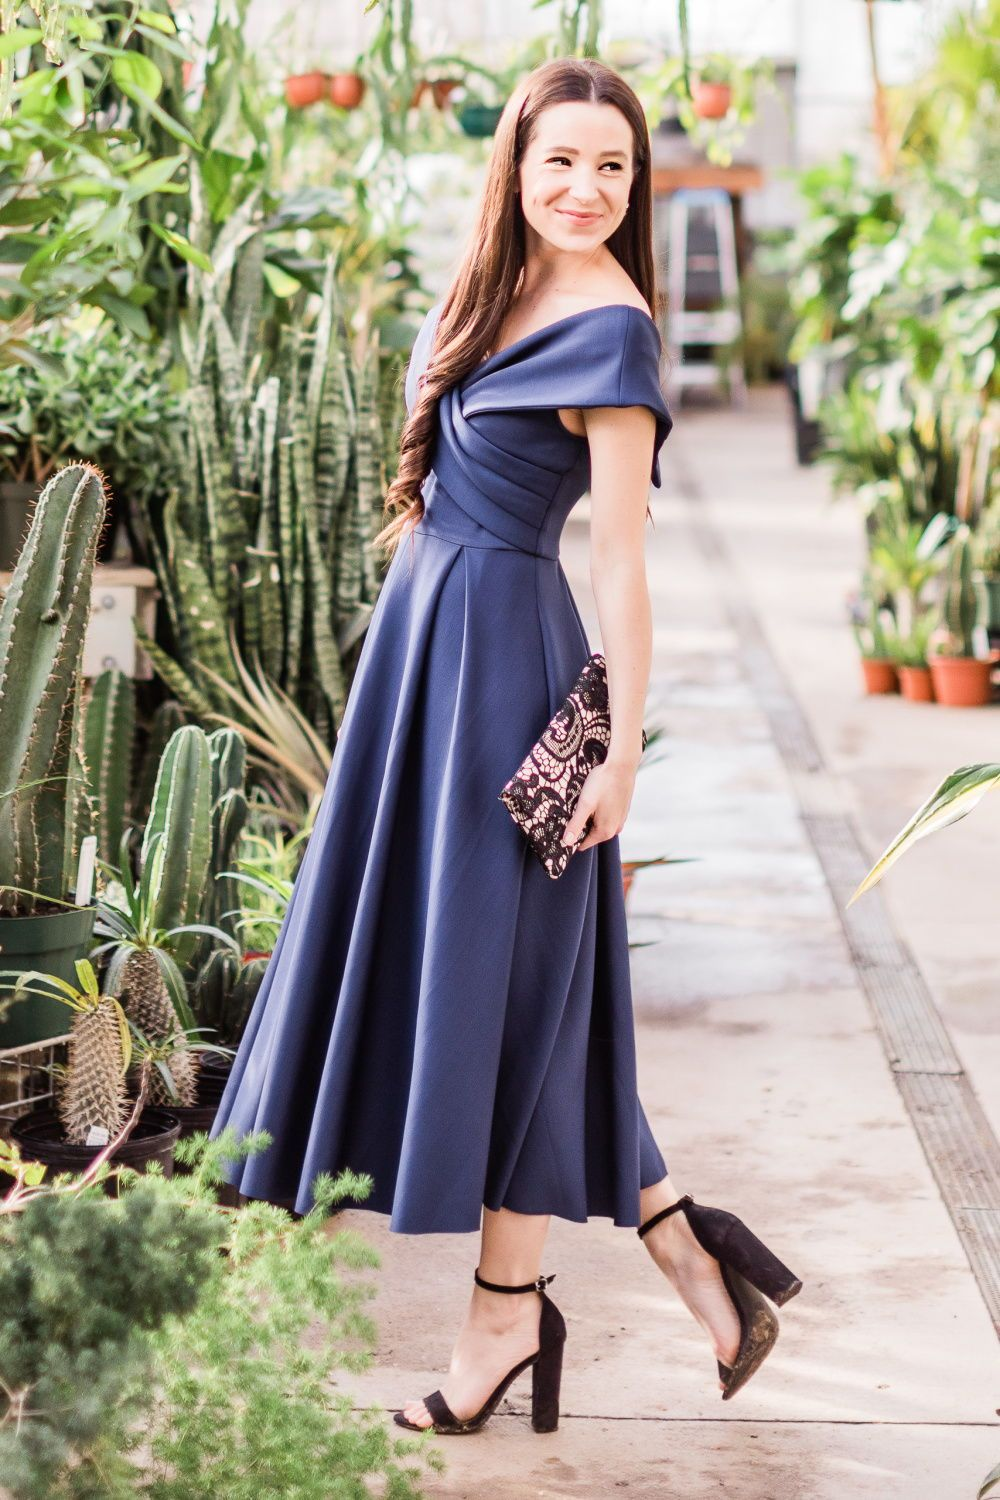 Style Guide What To Wear To A Garden Party Wedding With Images Garden Wedding Dress Guest Wedding Guest Dress Styles Navy Wedding Guest Dresses